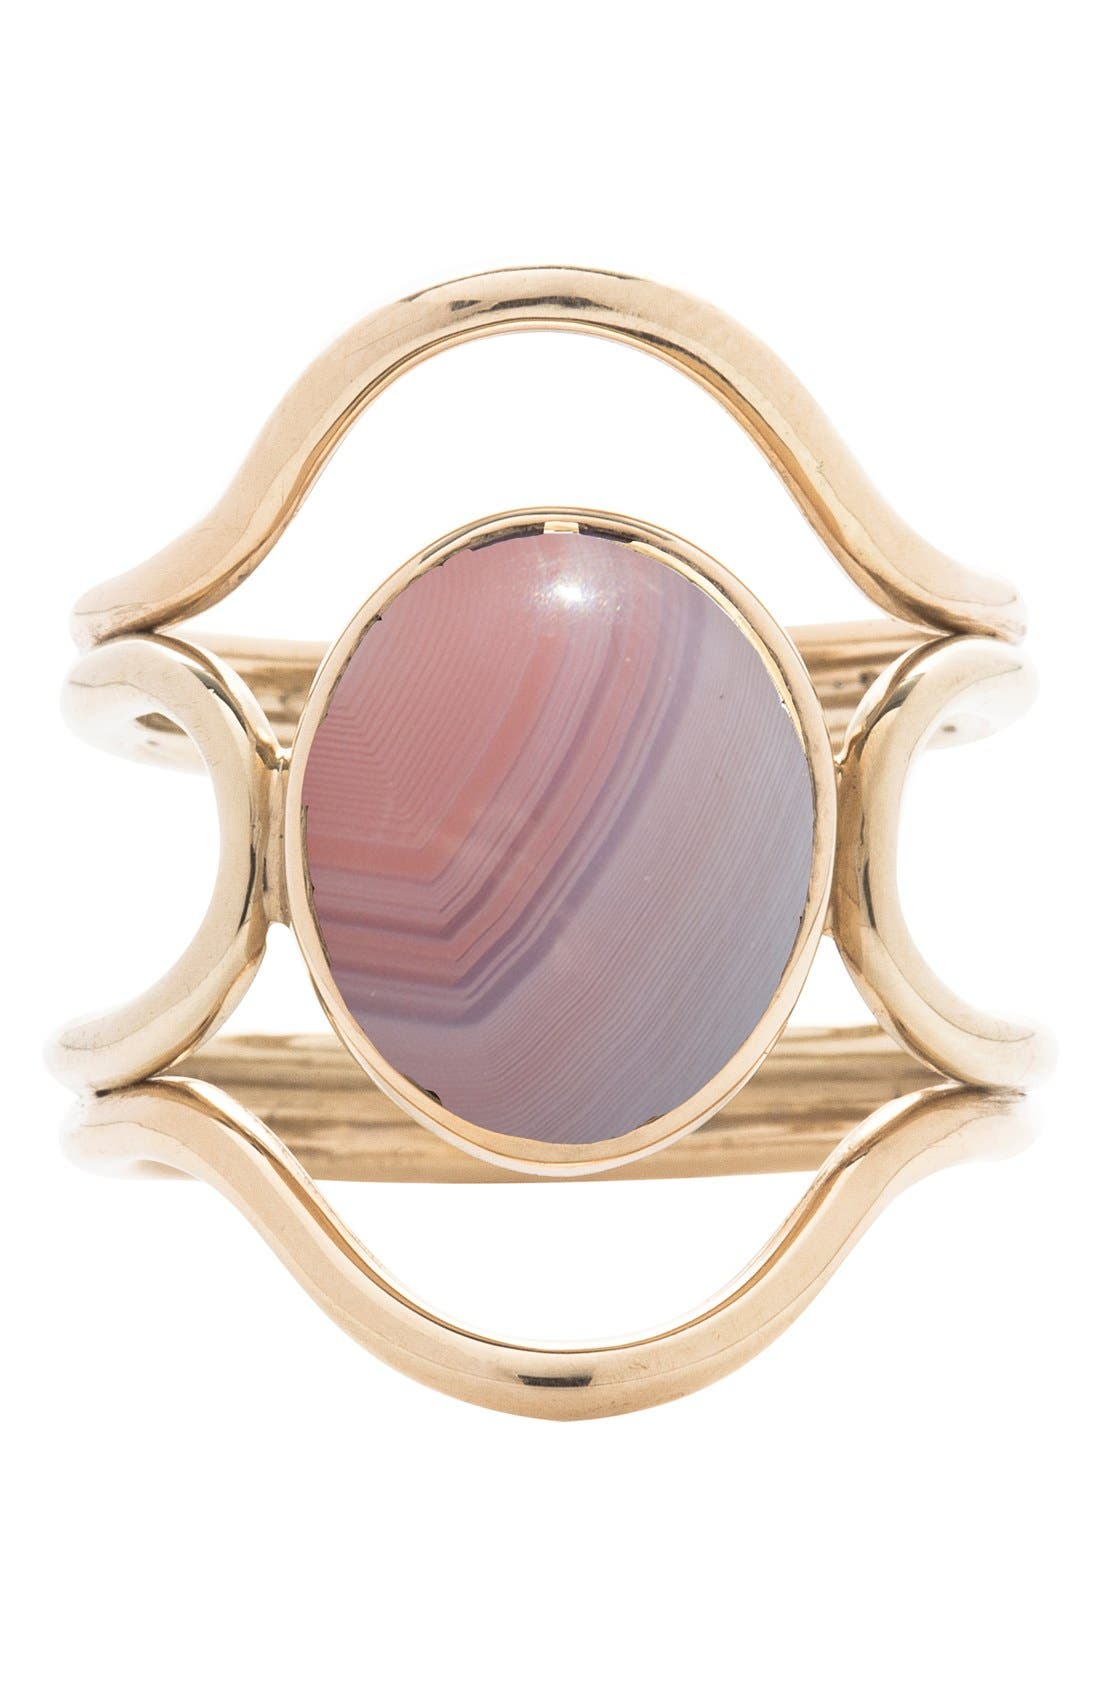 MOCIUN Connection Agate Ring